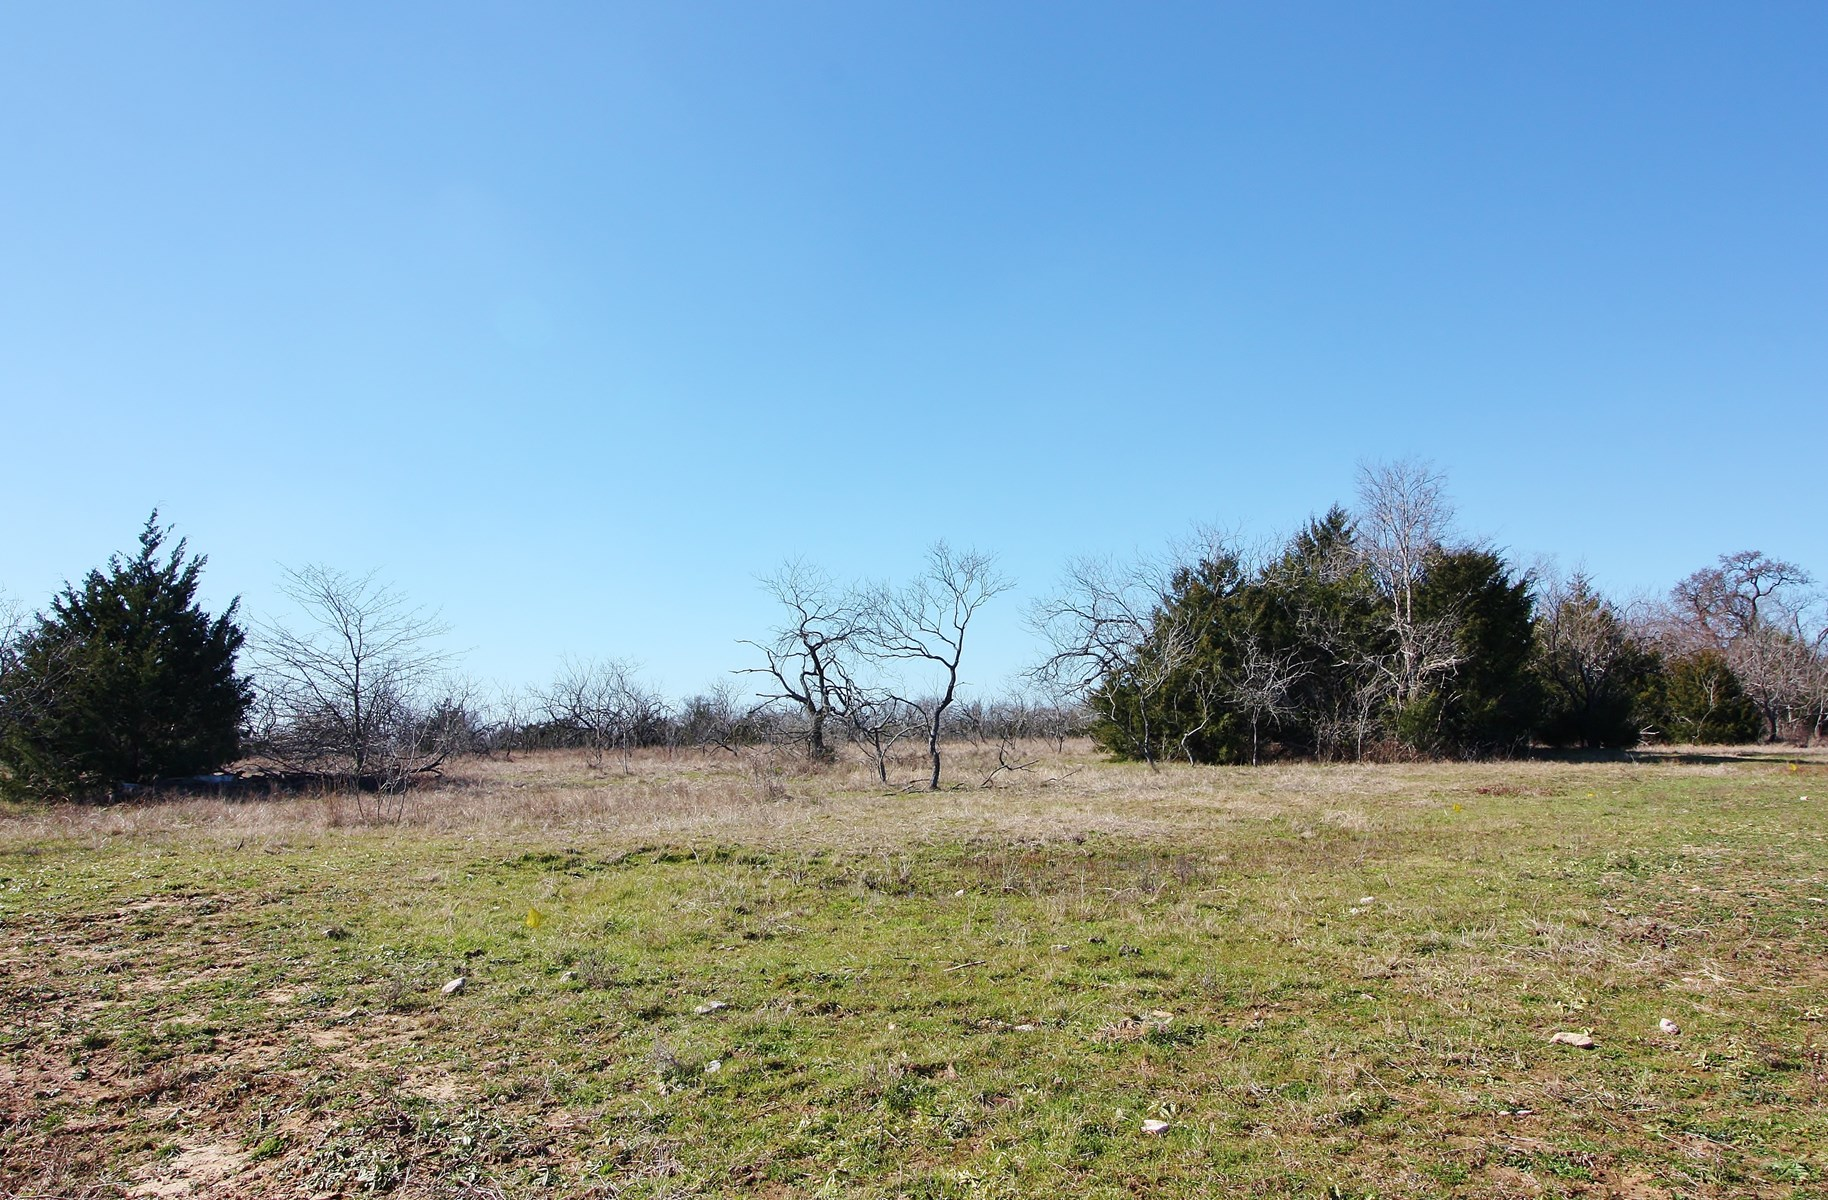 Land for Sale in Thornton, TX - Limestone County